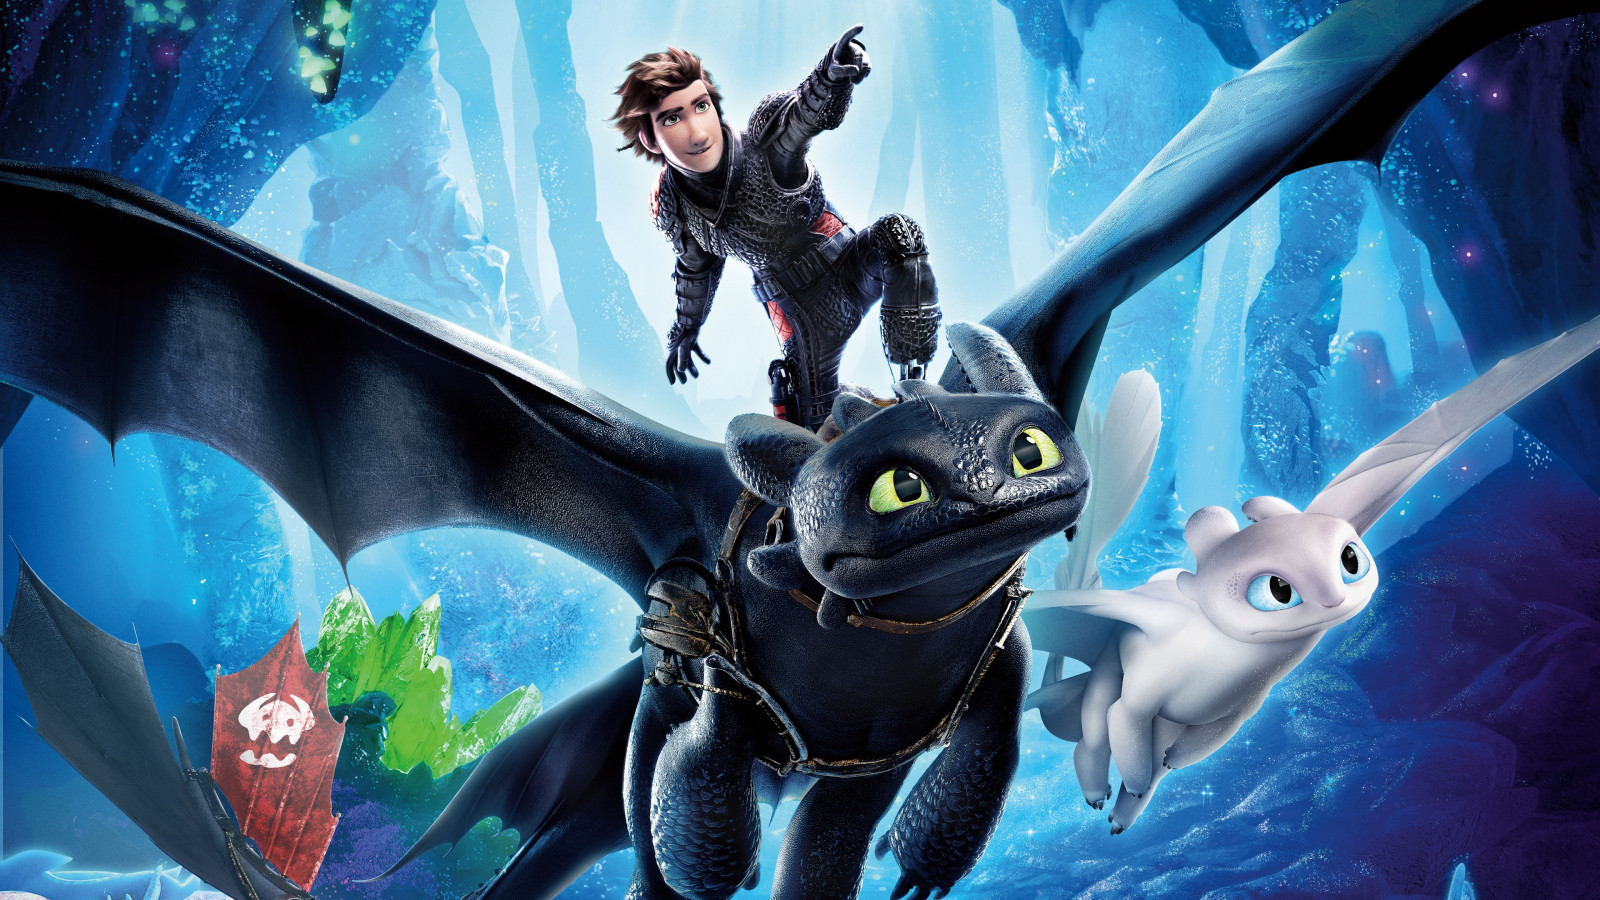 How to Train Your Dragon 2019 wallpaper 1600x900